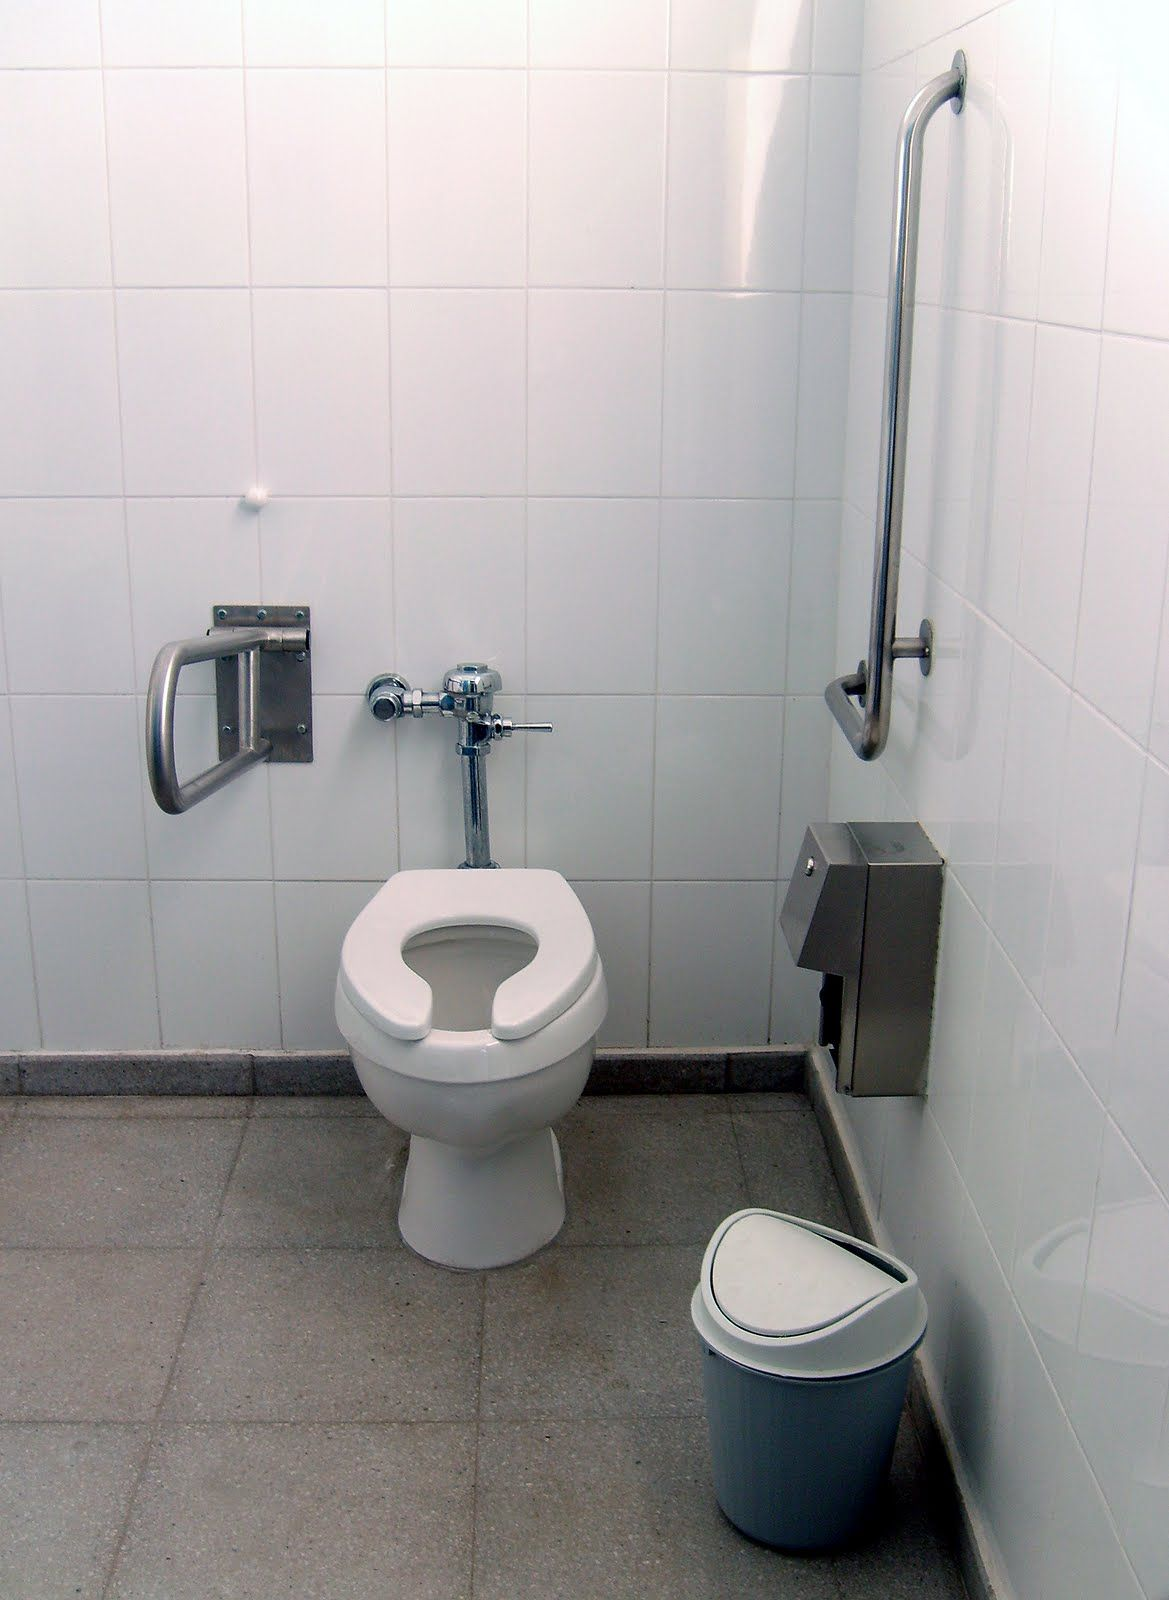 Bathroom For Disabled People DisabilitiesBathrooms Learn More At - Disabled bathroom fixtures